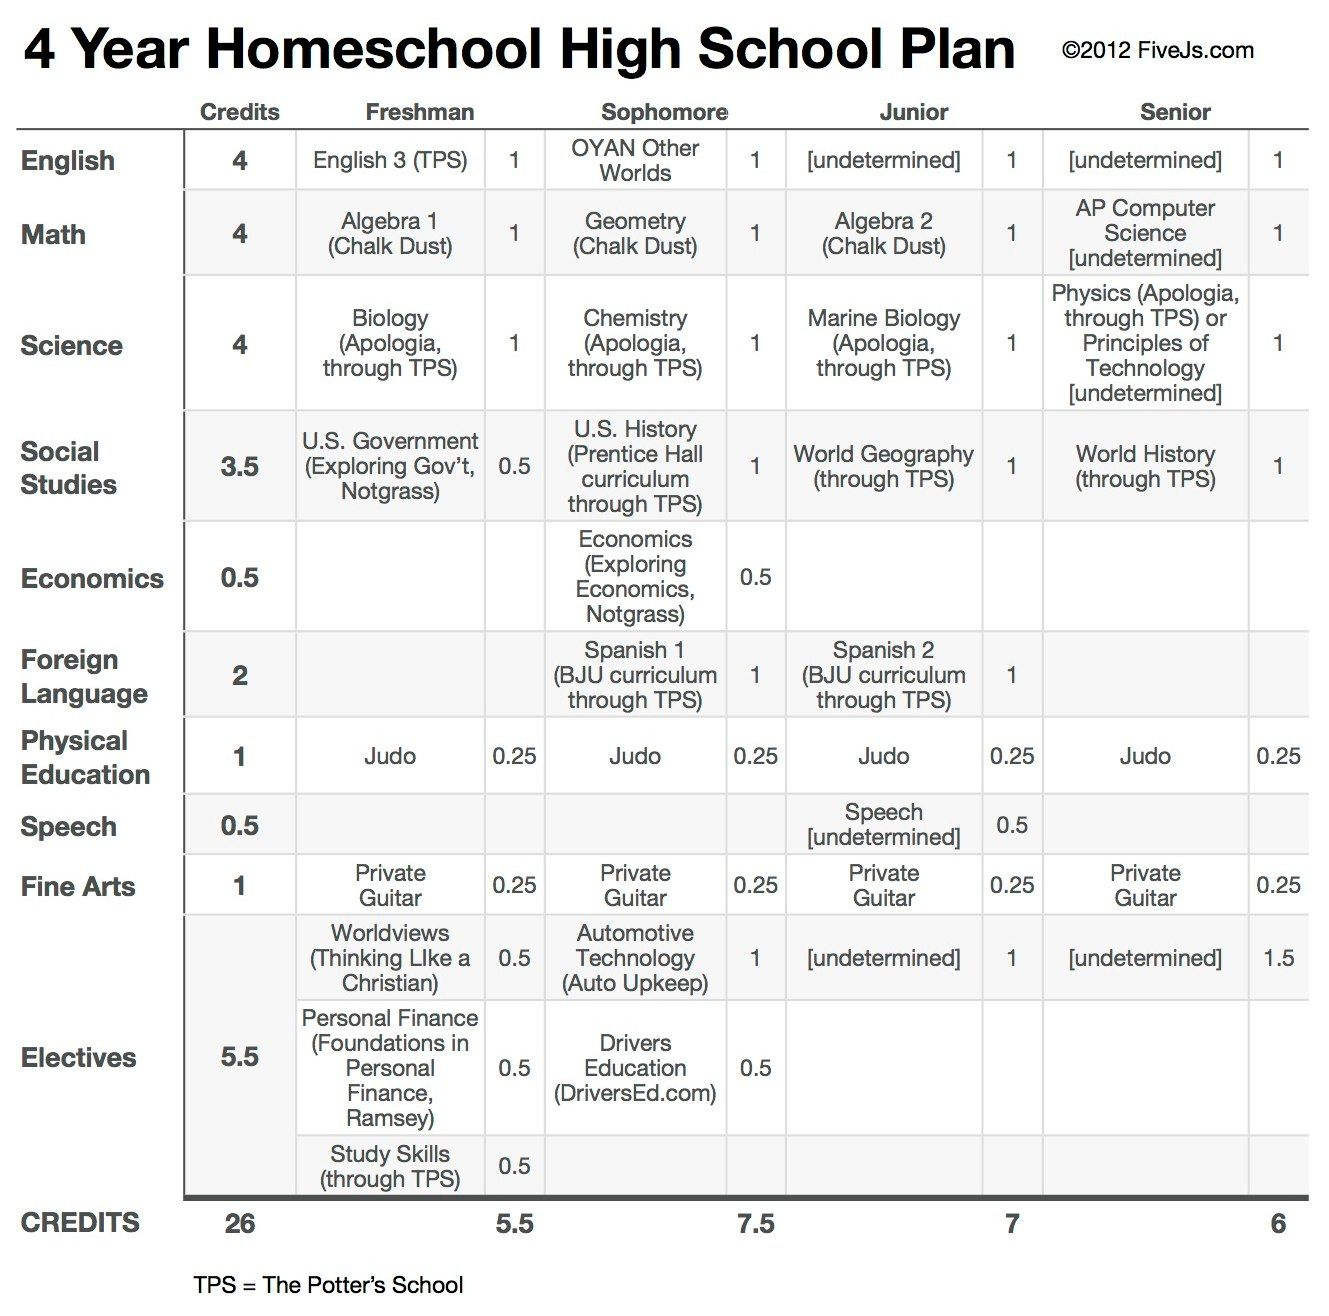 Our 10th Grade Homeschool High School Curriculum Plan